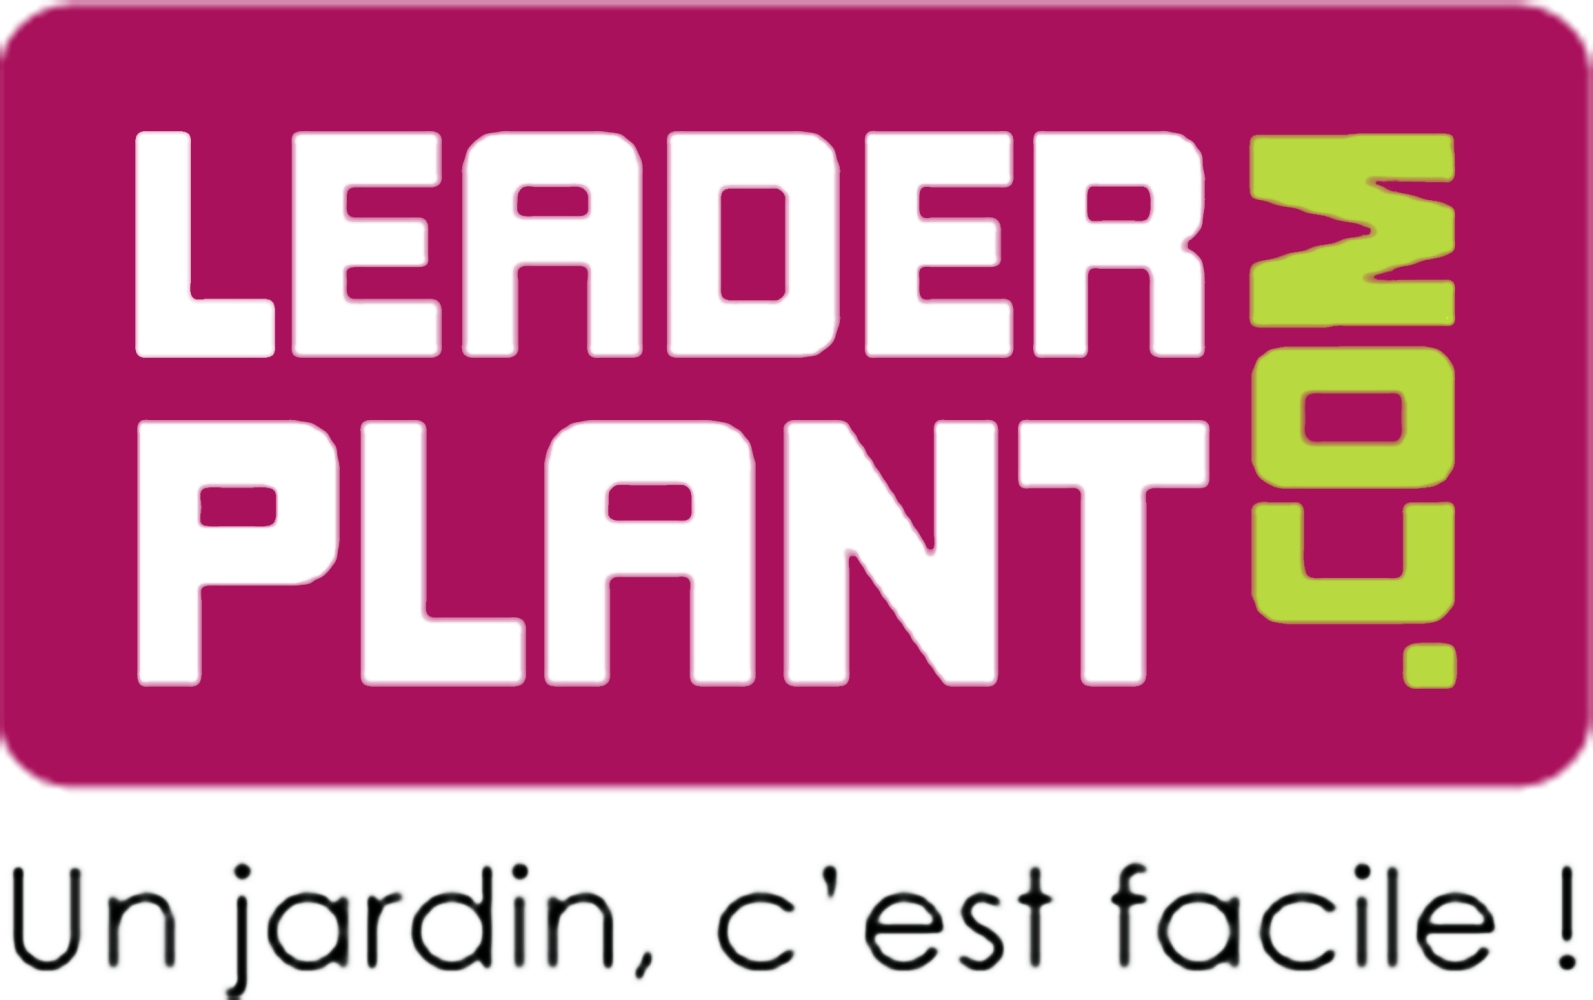 leaderplant logo